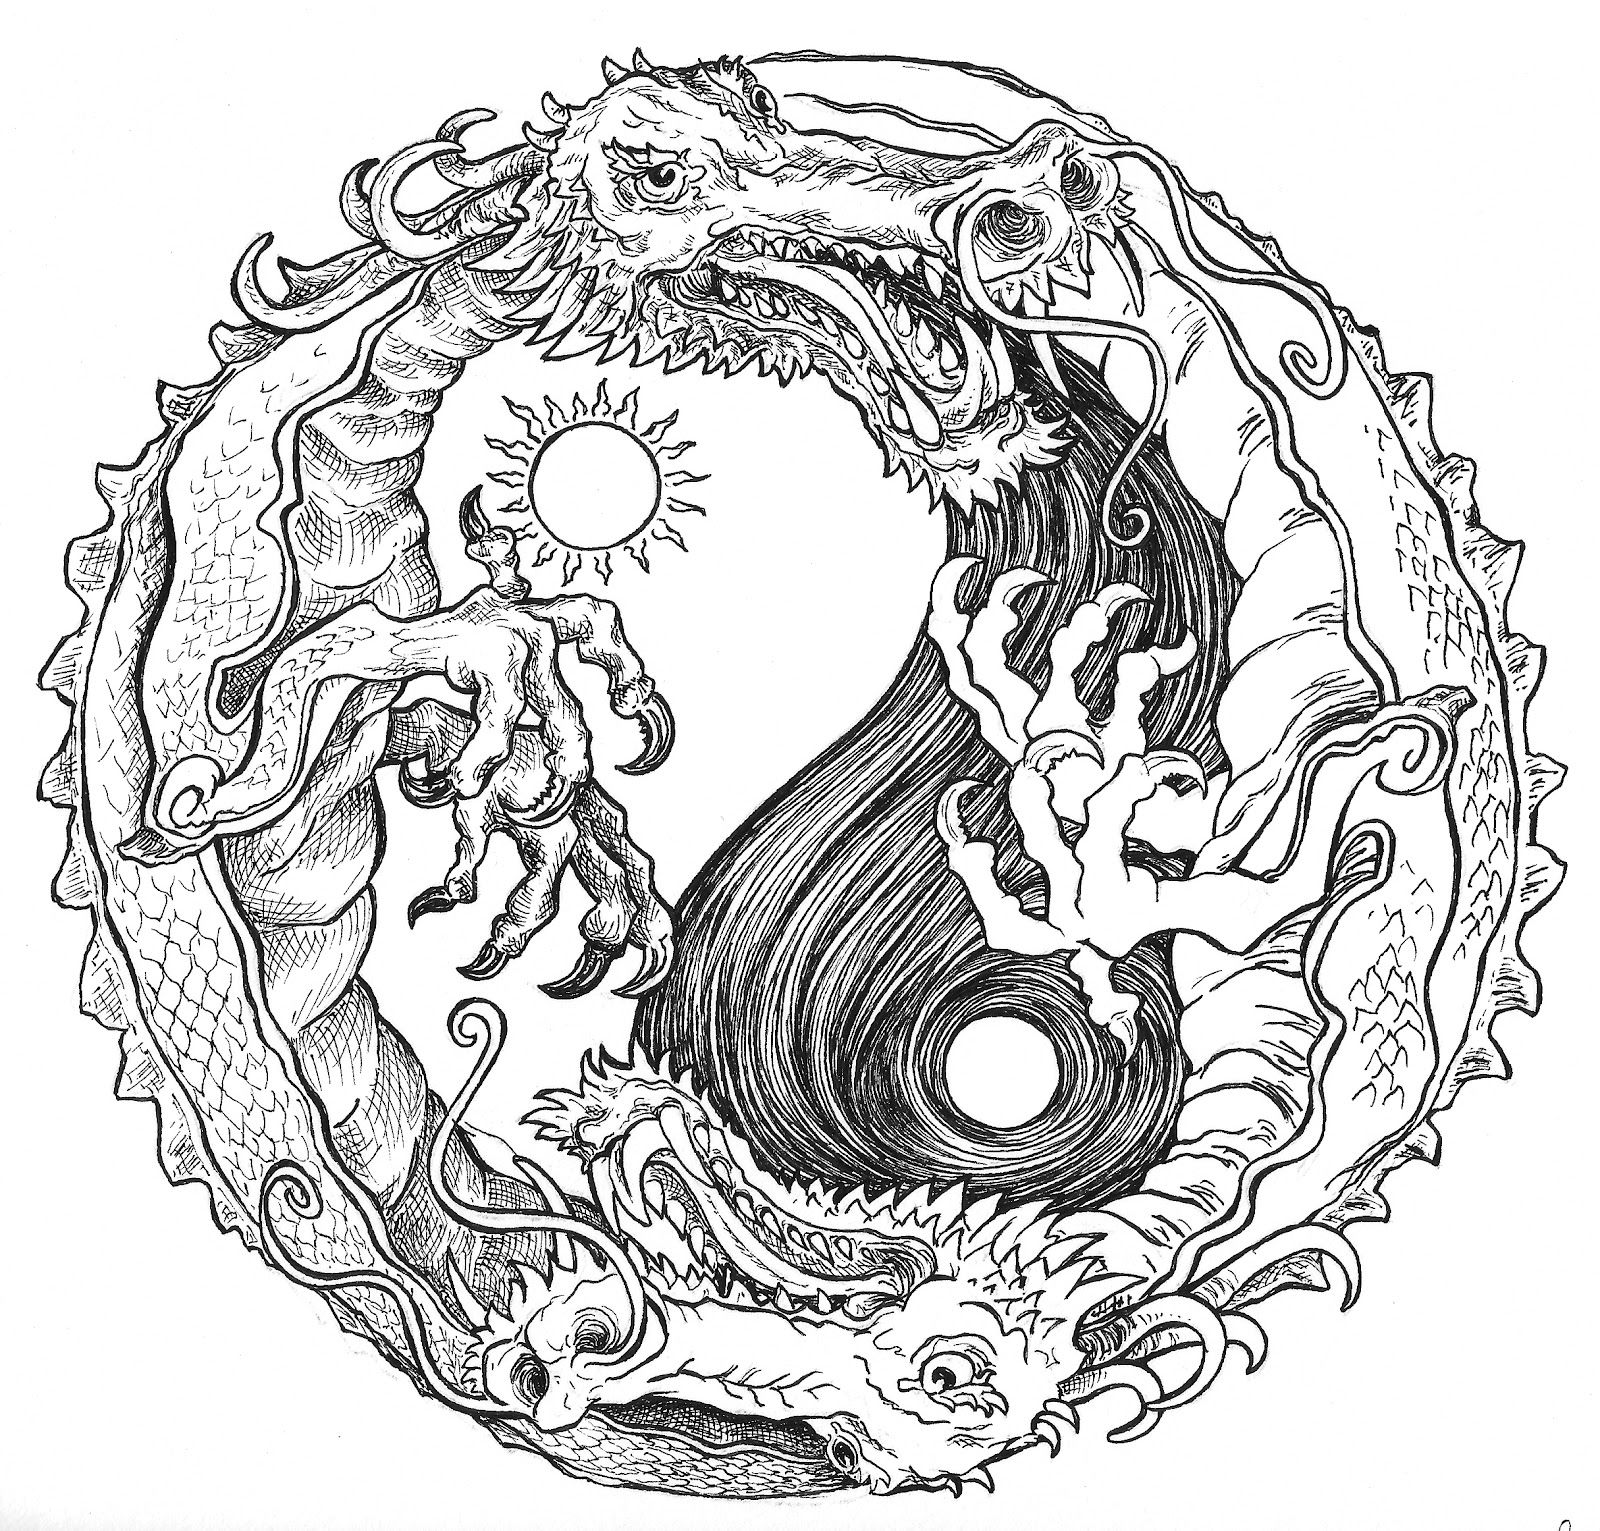 Sun and Moon Dragon Yin Yang Coloring